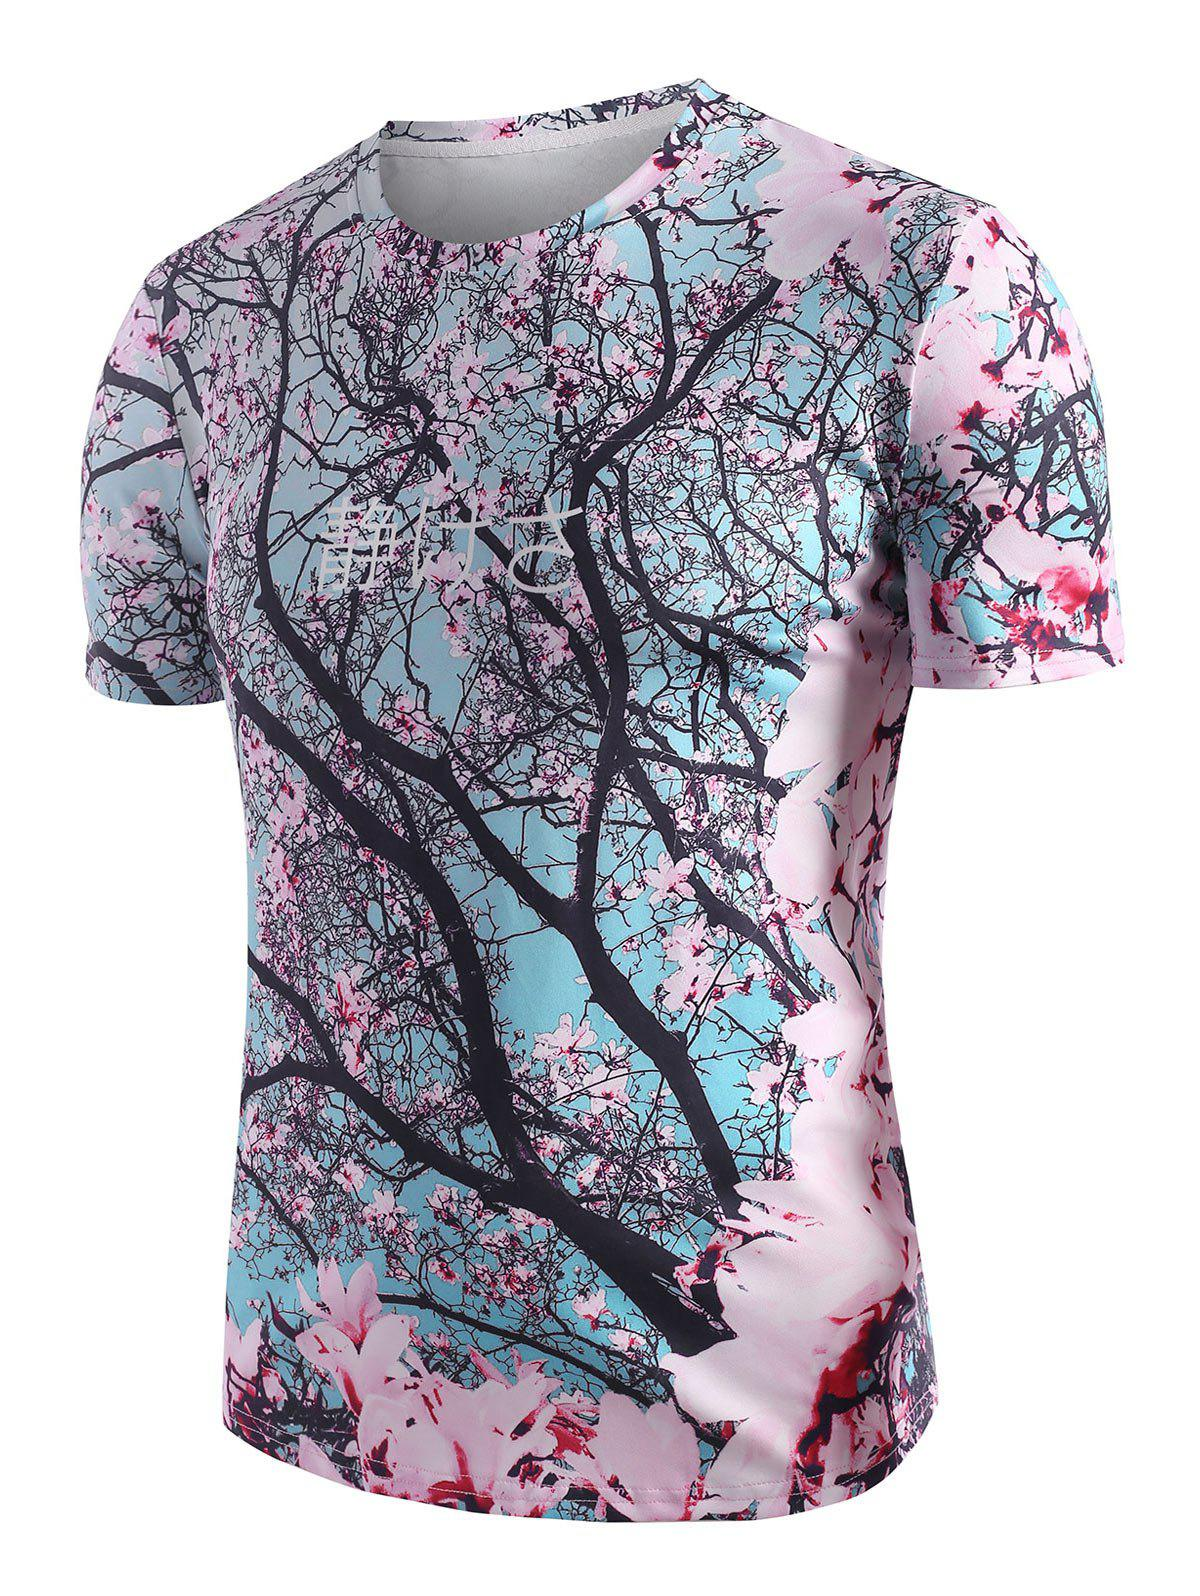 Sakura Floral 3D Print Vacation T-shirt - multicolor M